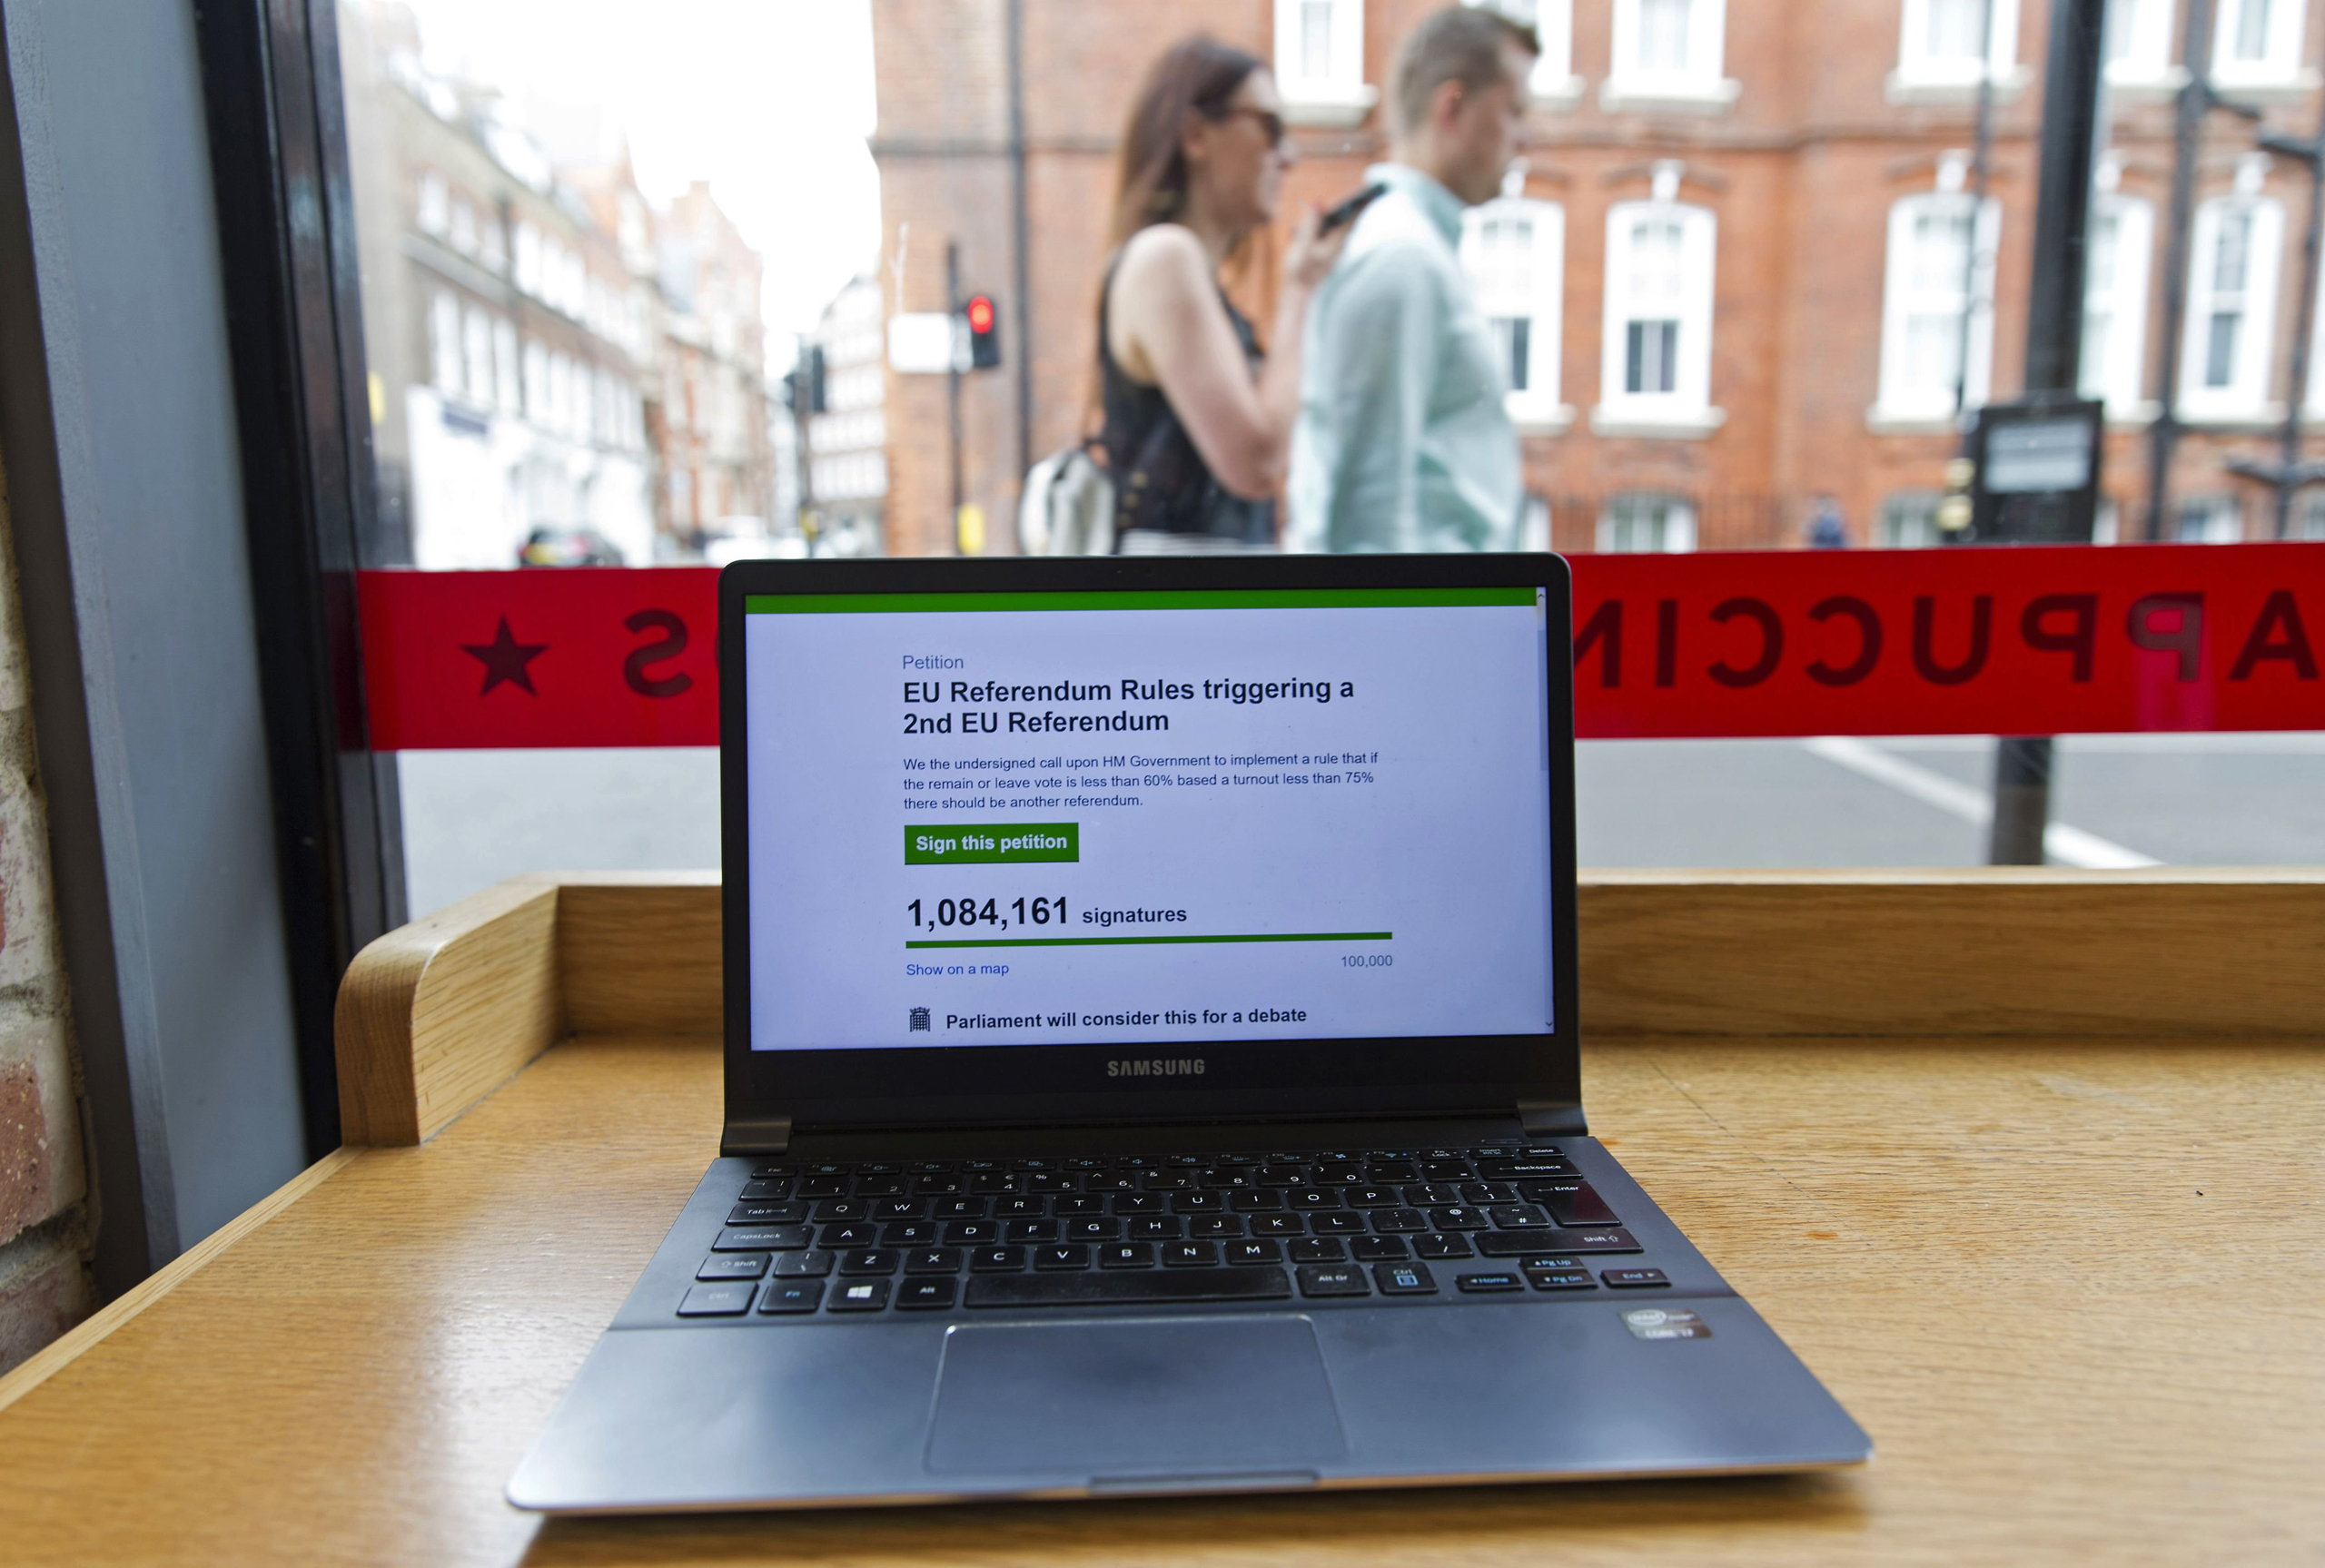 A laptop screen displays a parliamentary petition on the website of the British government, calling for a 2nd UK referendum on the UK's inclusion within the EU, following the pro-Brexit result of the June 23 vote to leave.